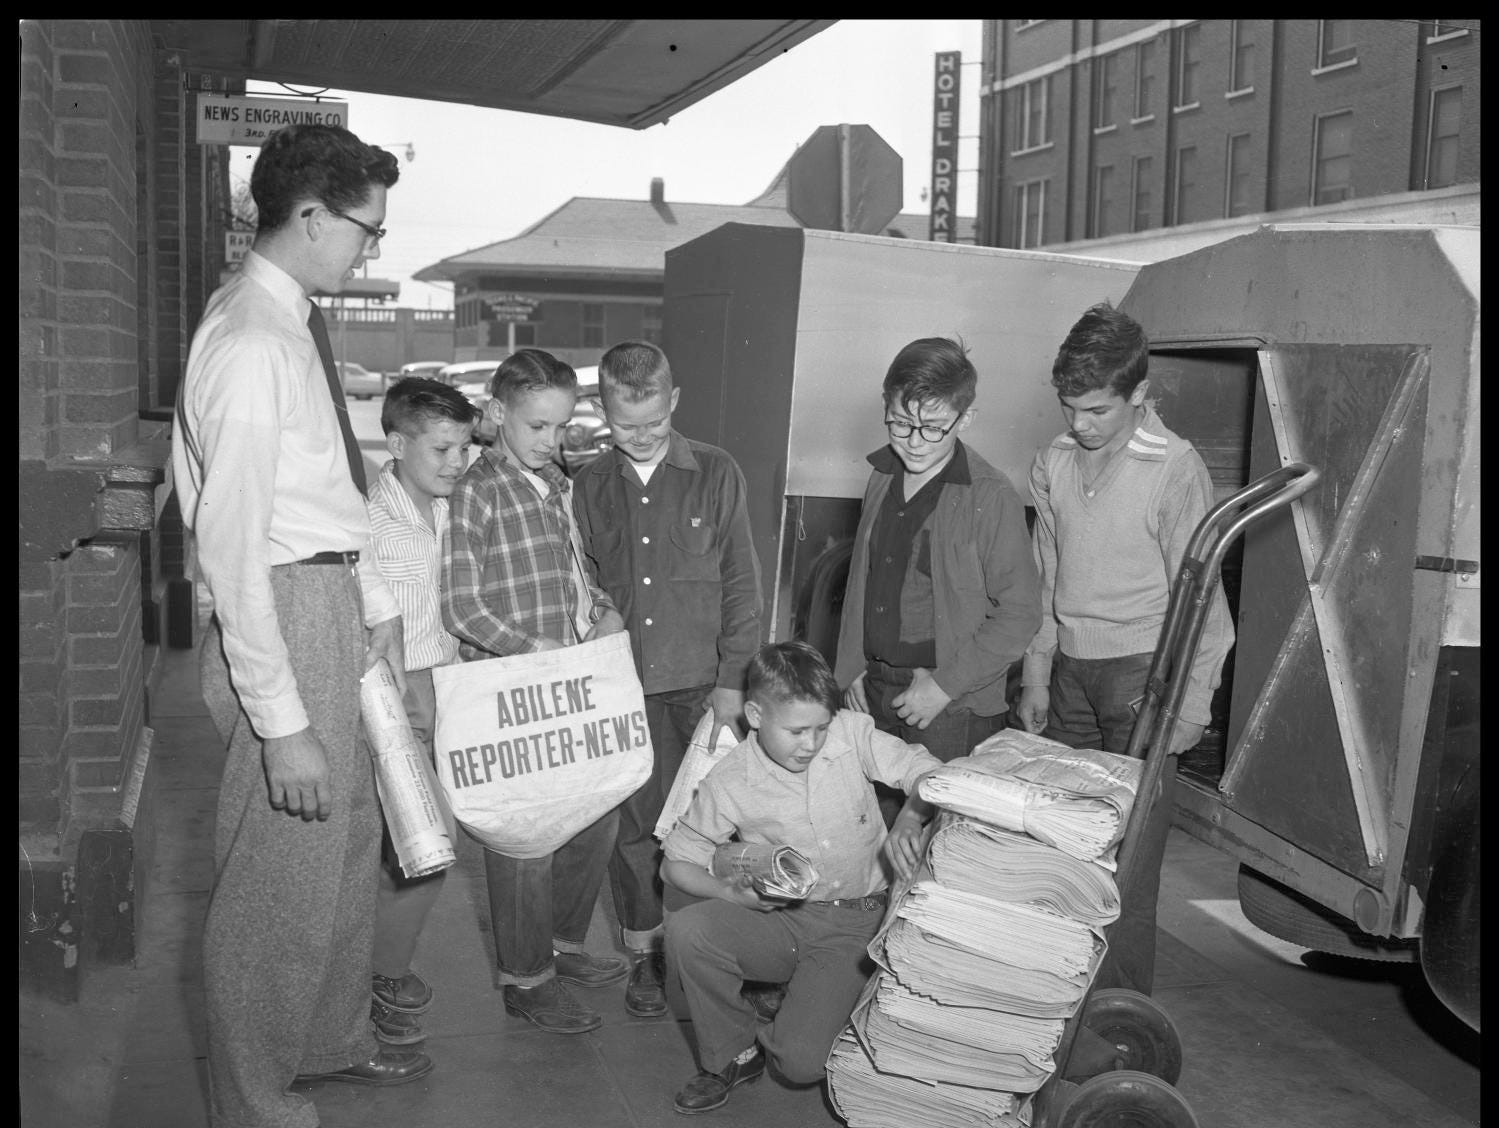 """A photo of the """"Abilene Reporter-News Boys"""" and a man standing on the sidewalk. From 1955."""